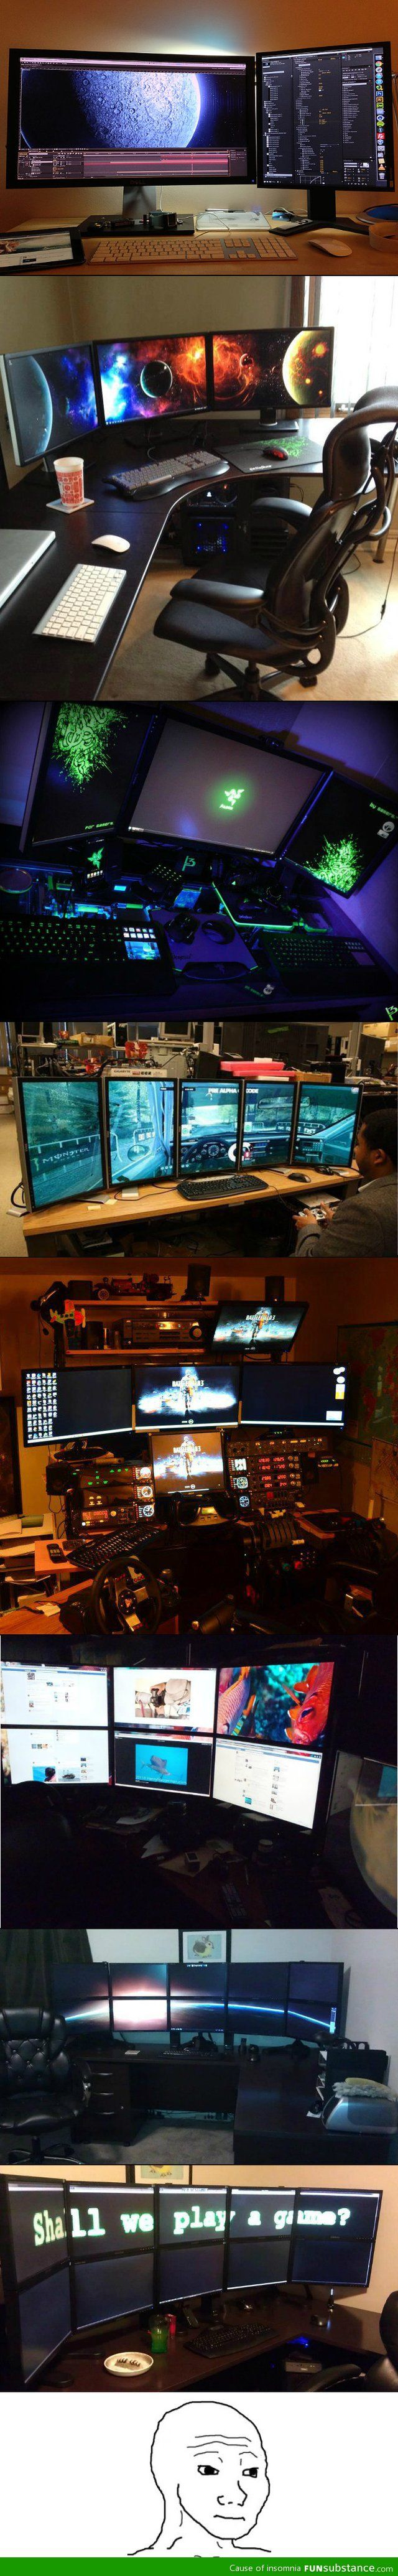 Every gamers dream